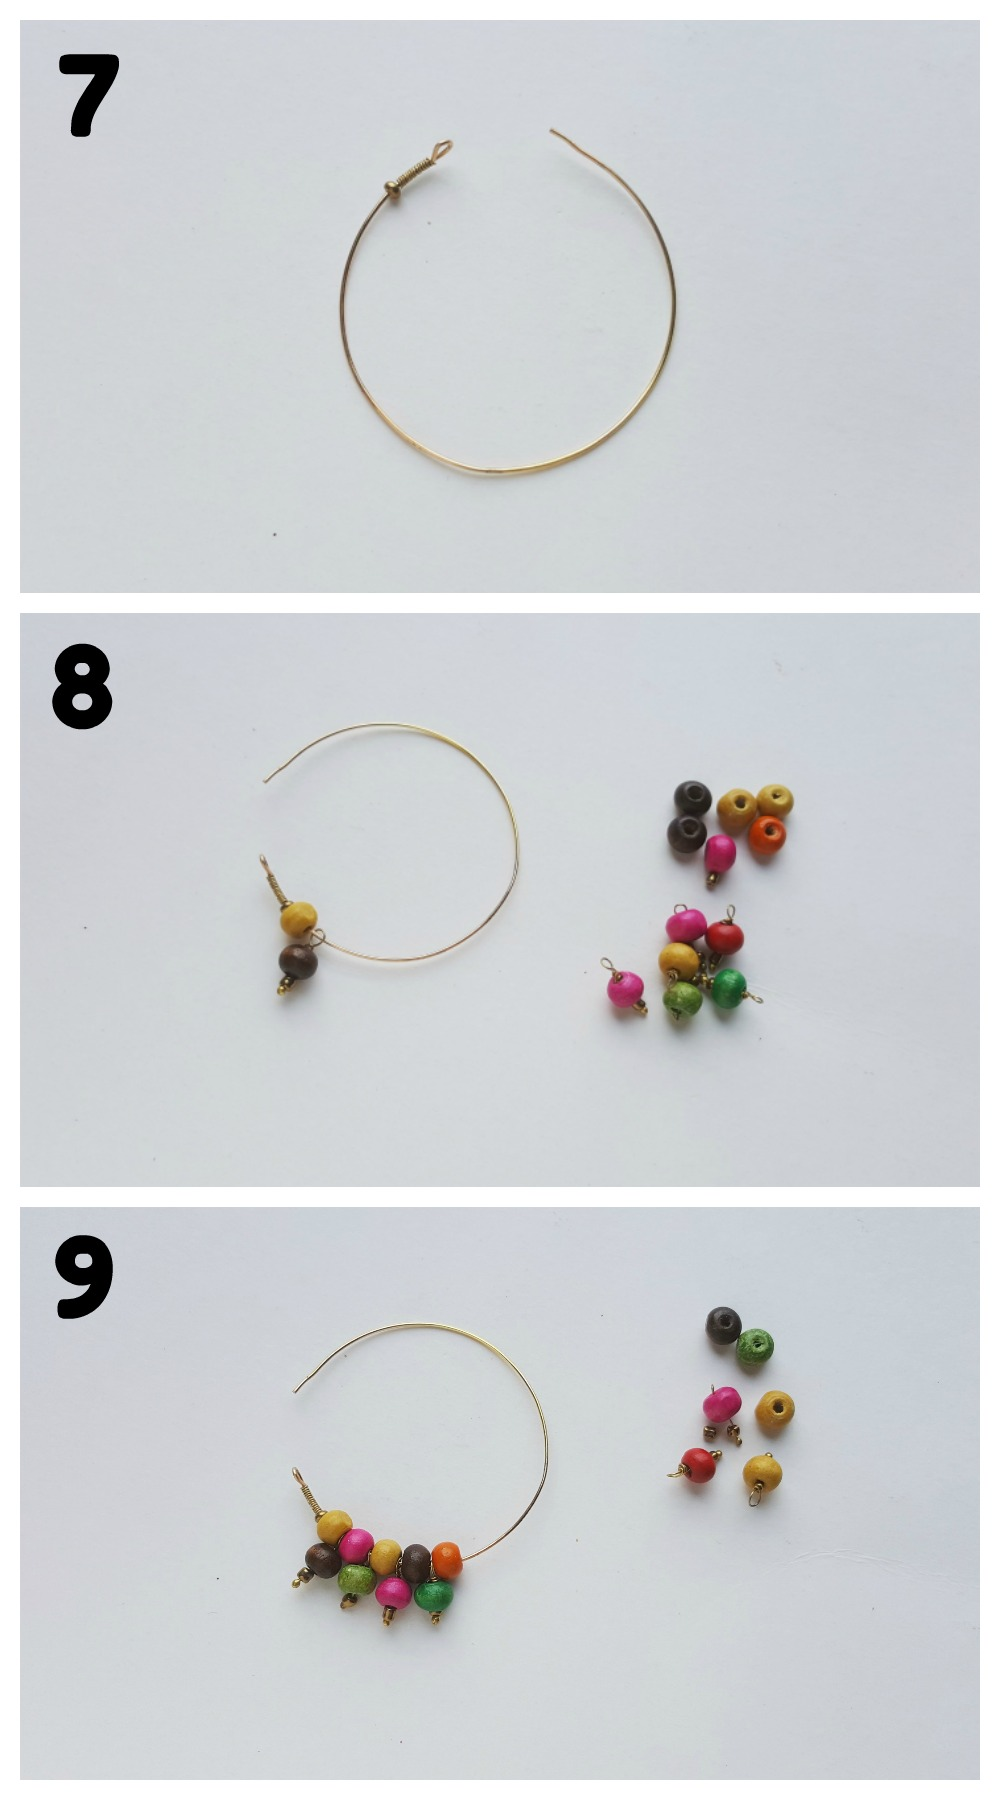 Beaded Hoop Earrings DIY Craft Steps 7-9